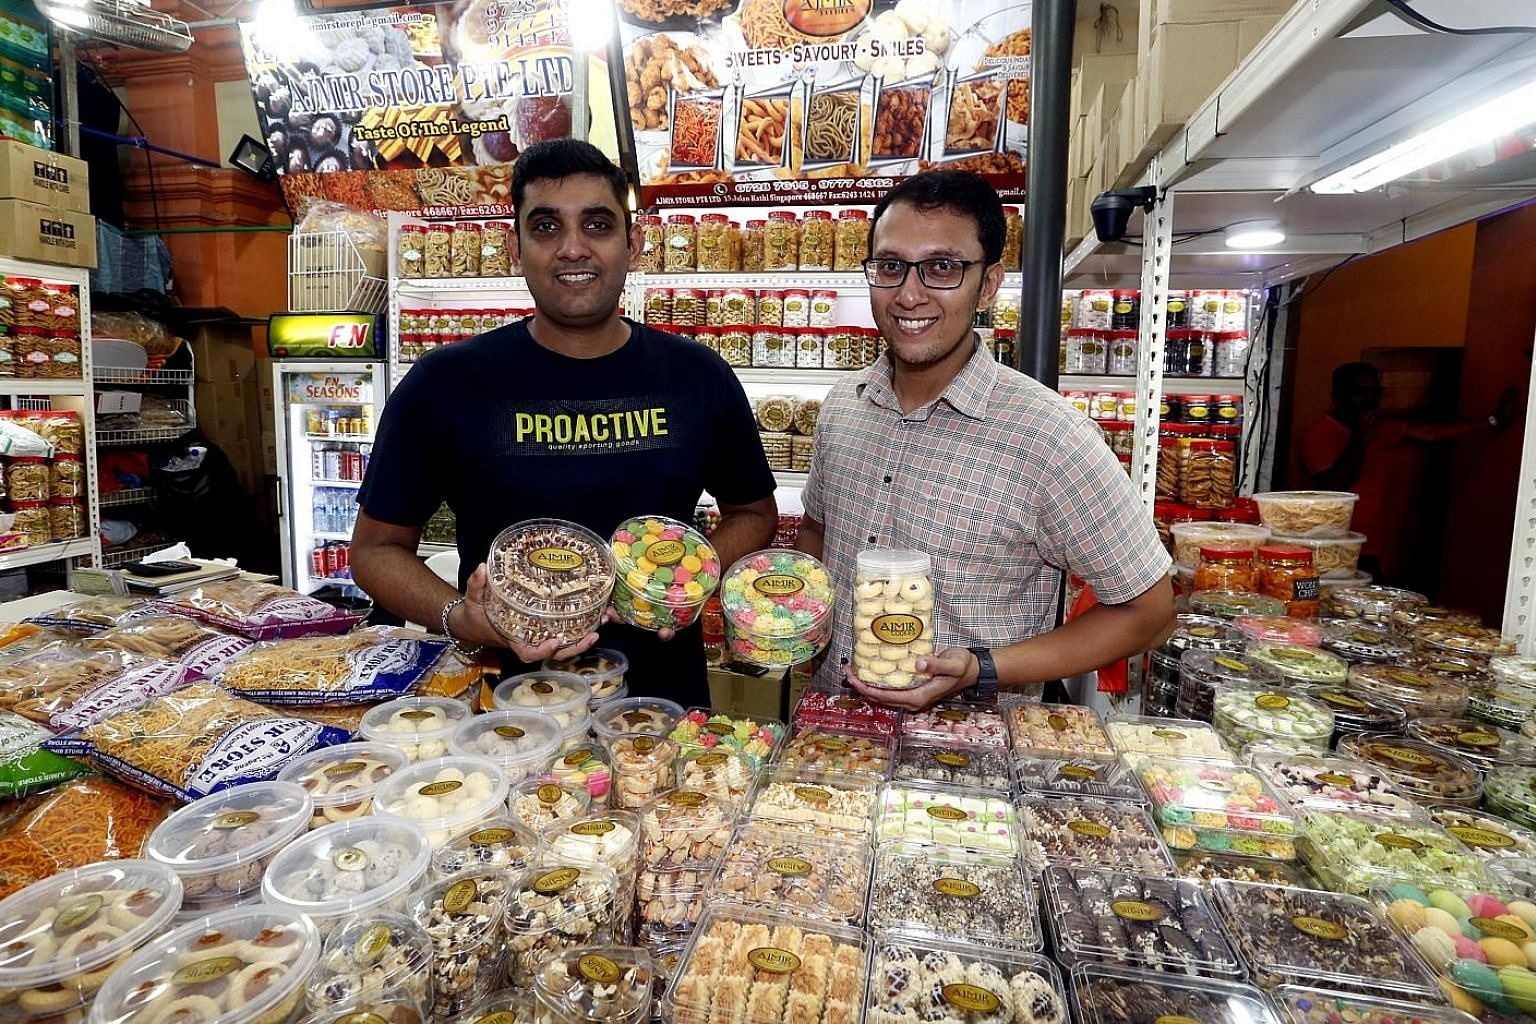 Brothers Mohamed Faizal (left) and Mohamed Ismail, who run Ajmir Store in the Deepavali Festival Village, with their new snacks.